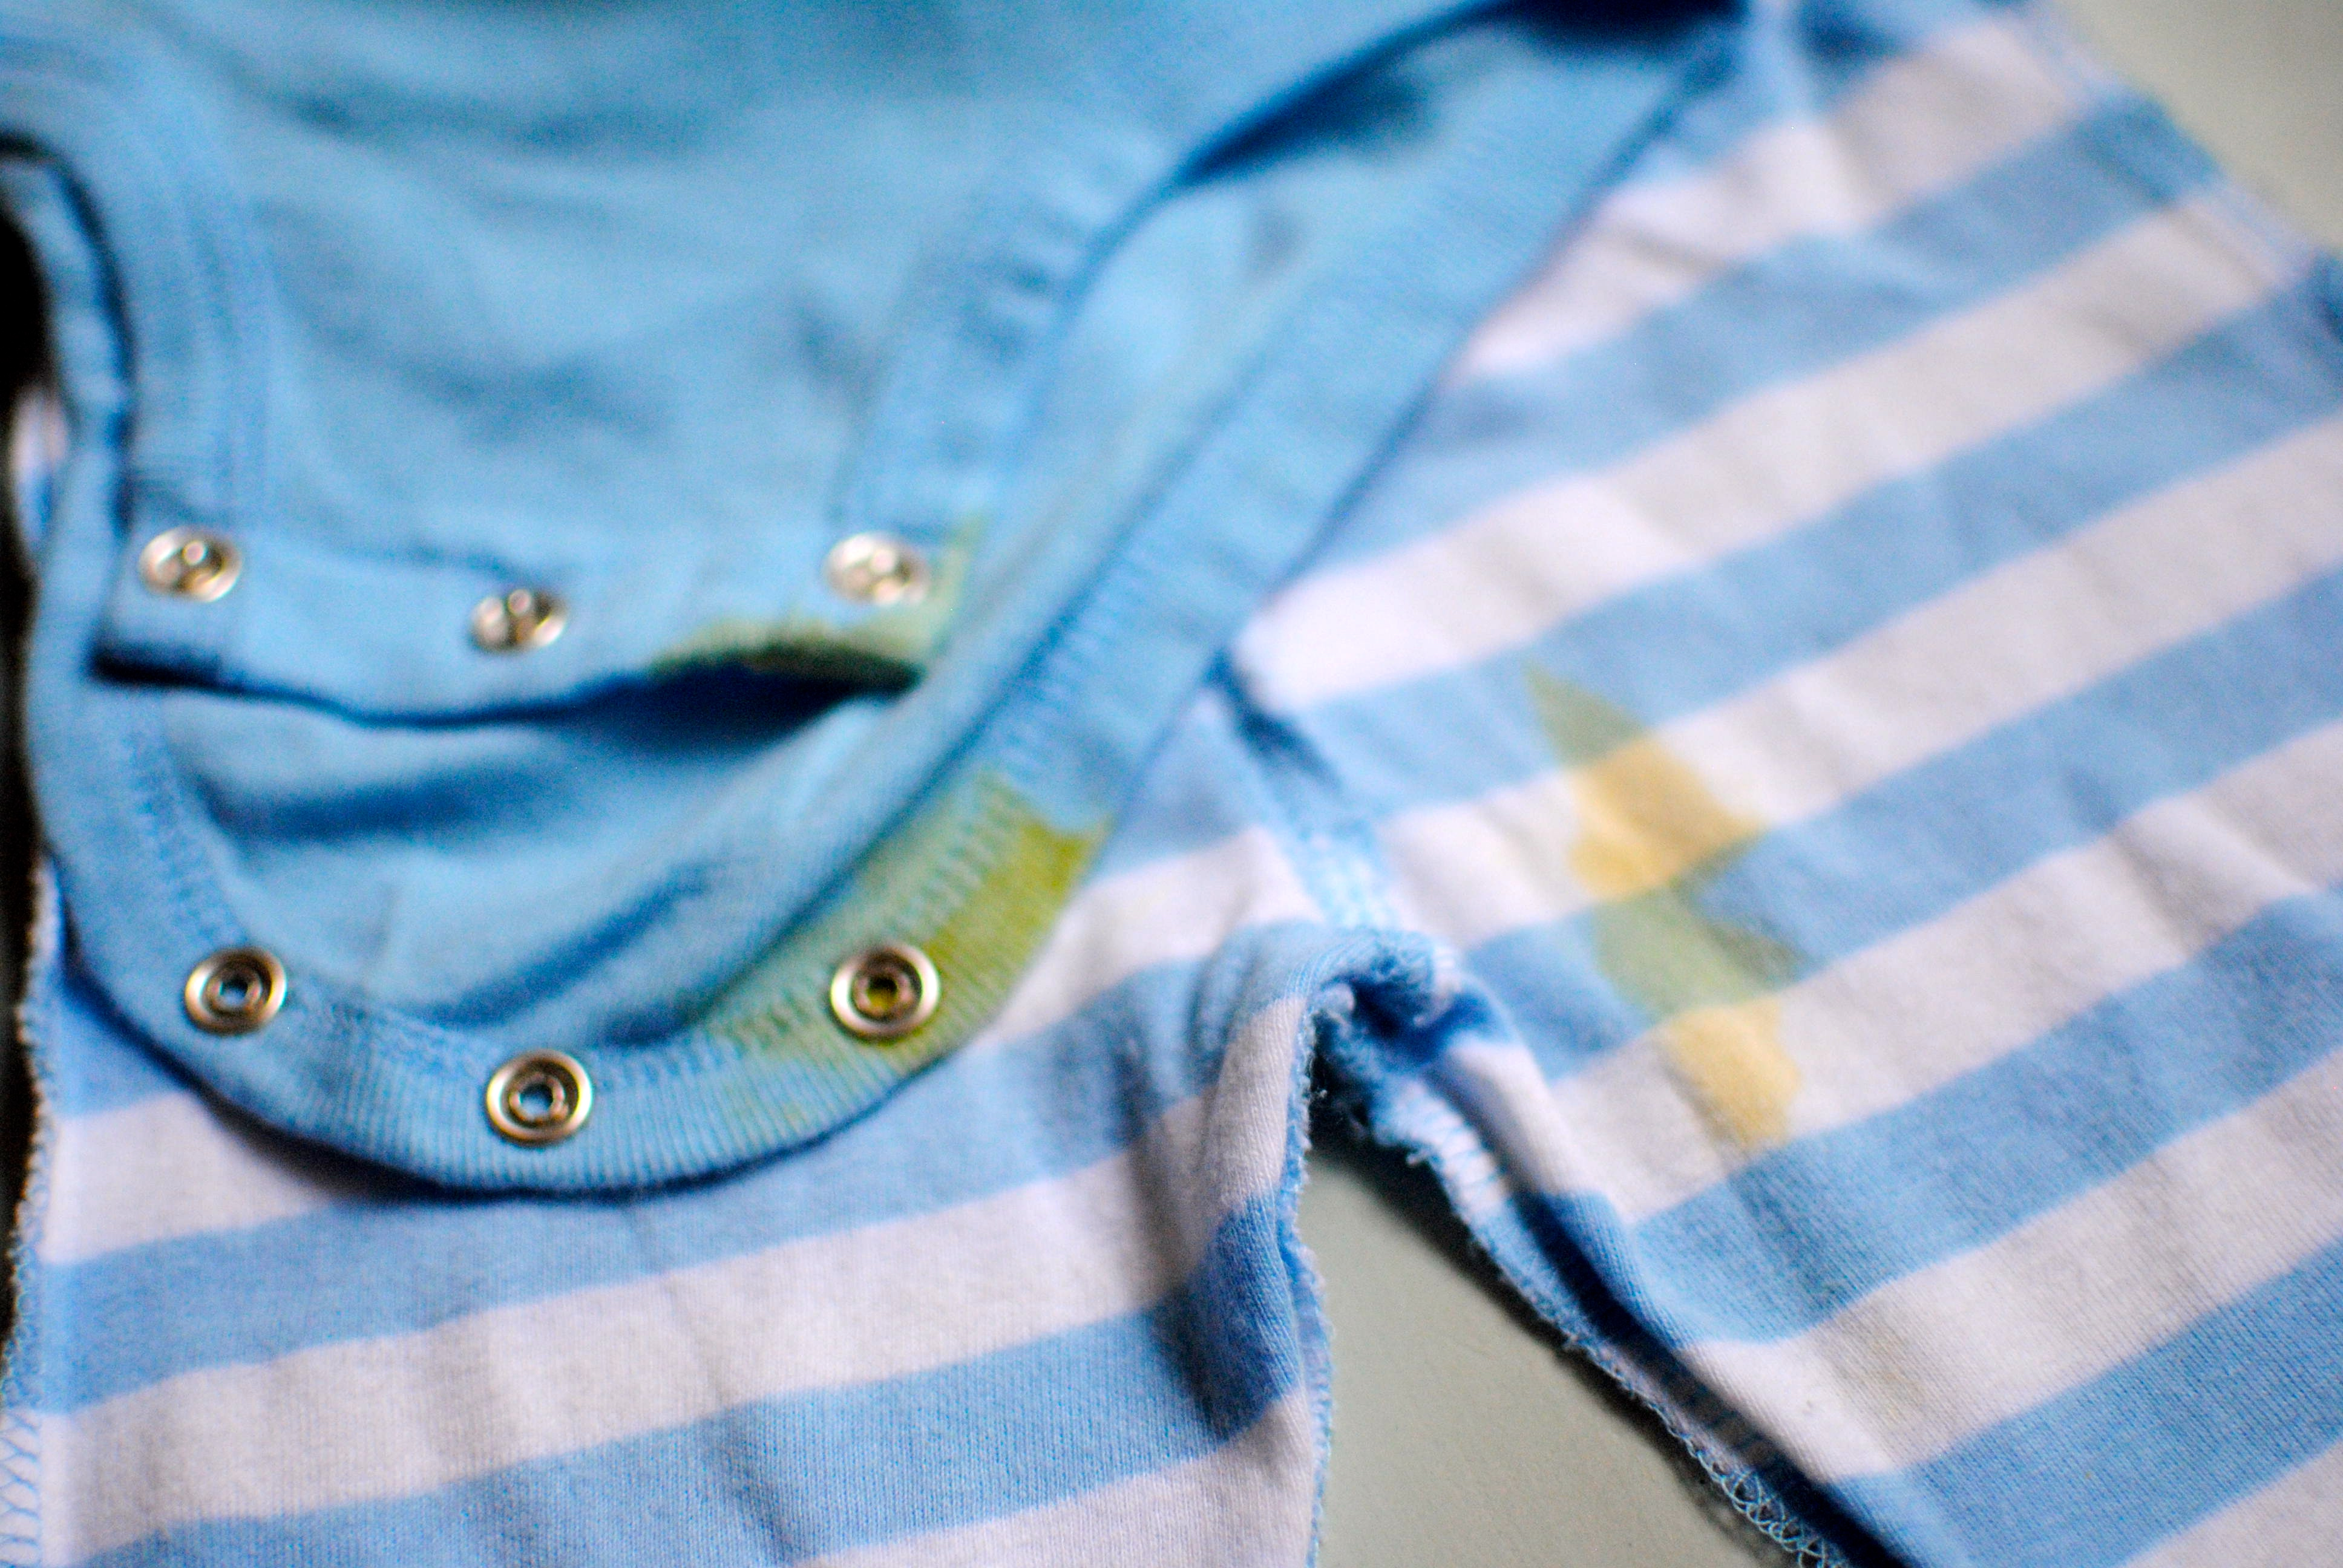 How to remove infant poop stains